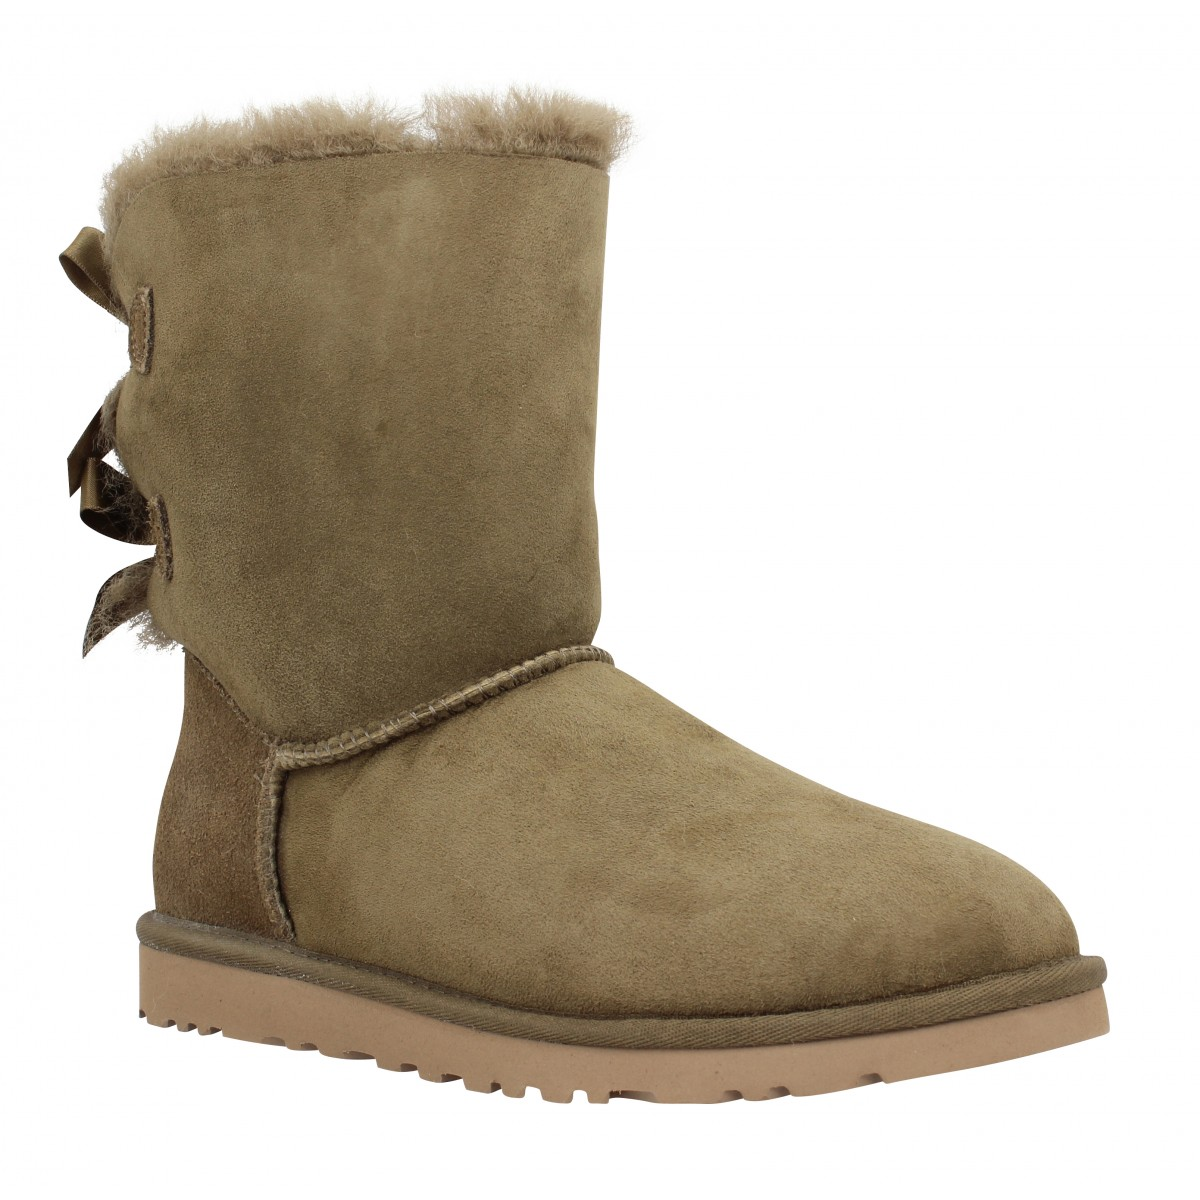 Bottines UGG AUSTRALIA Bailey Bow velours Femme Taupe